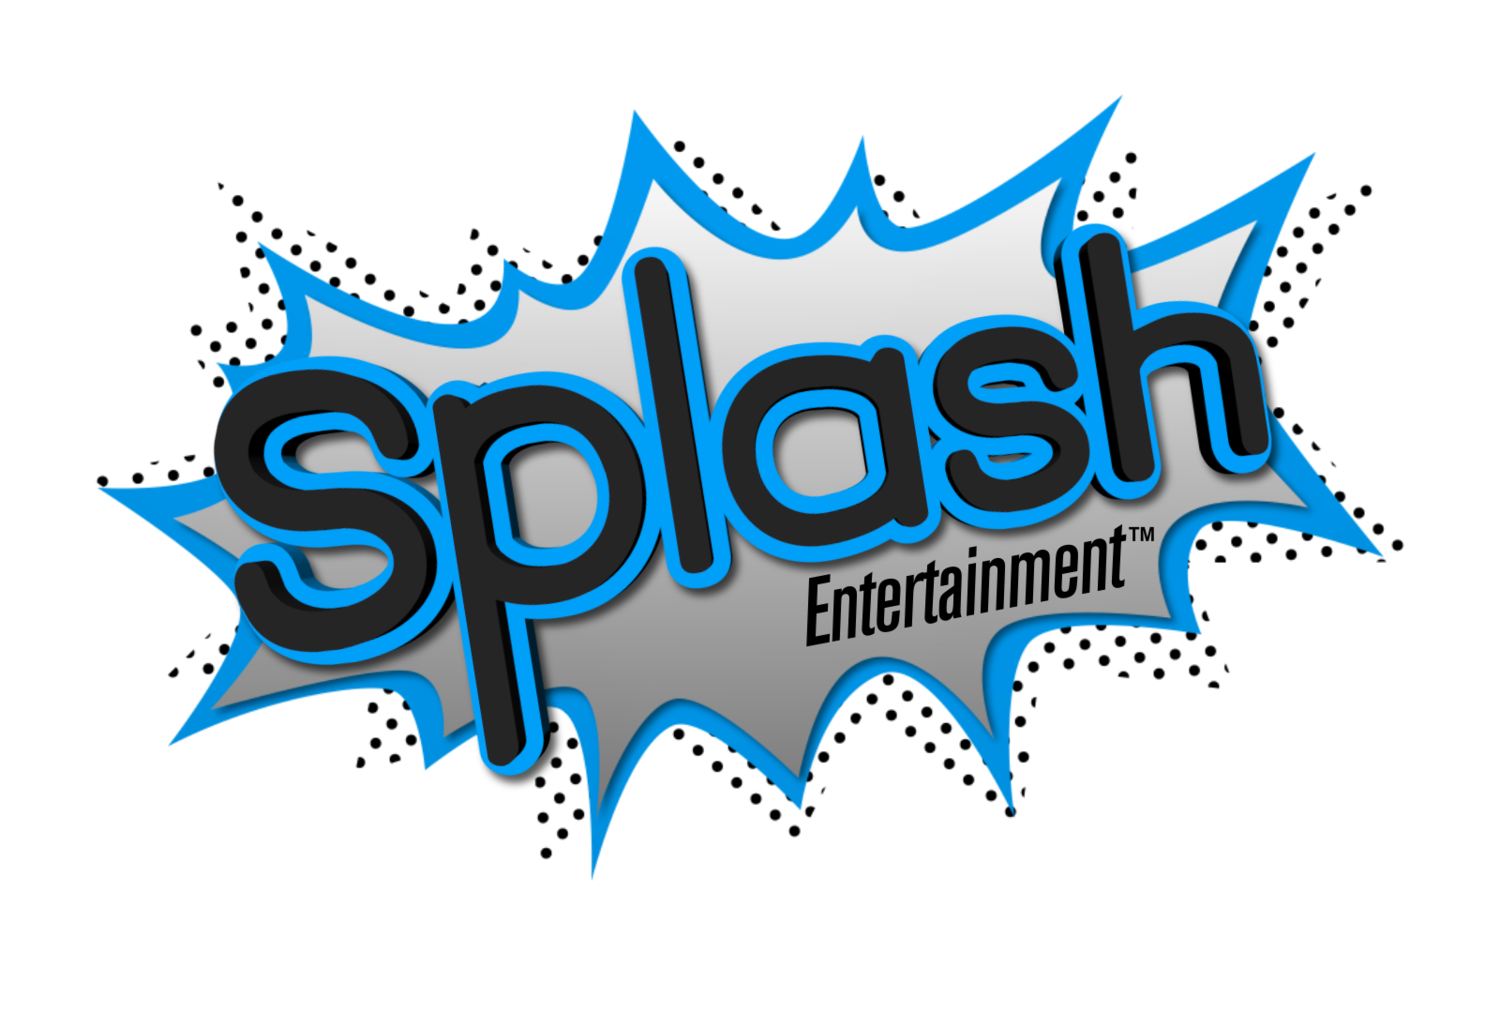 Splash Entertainment